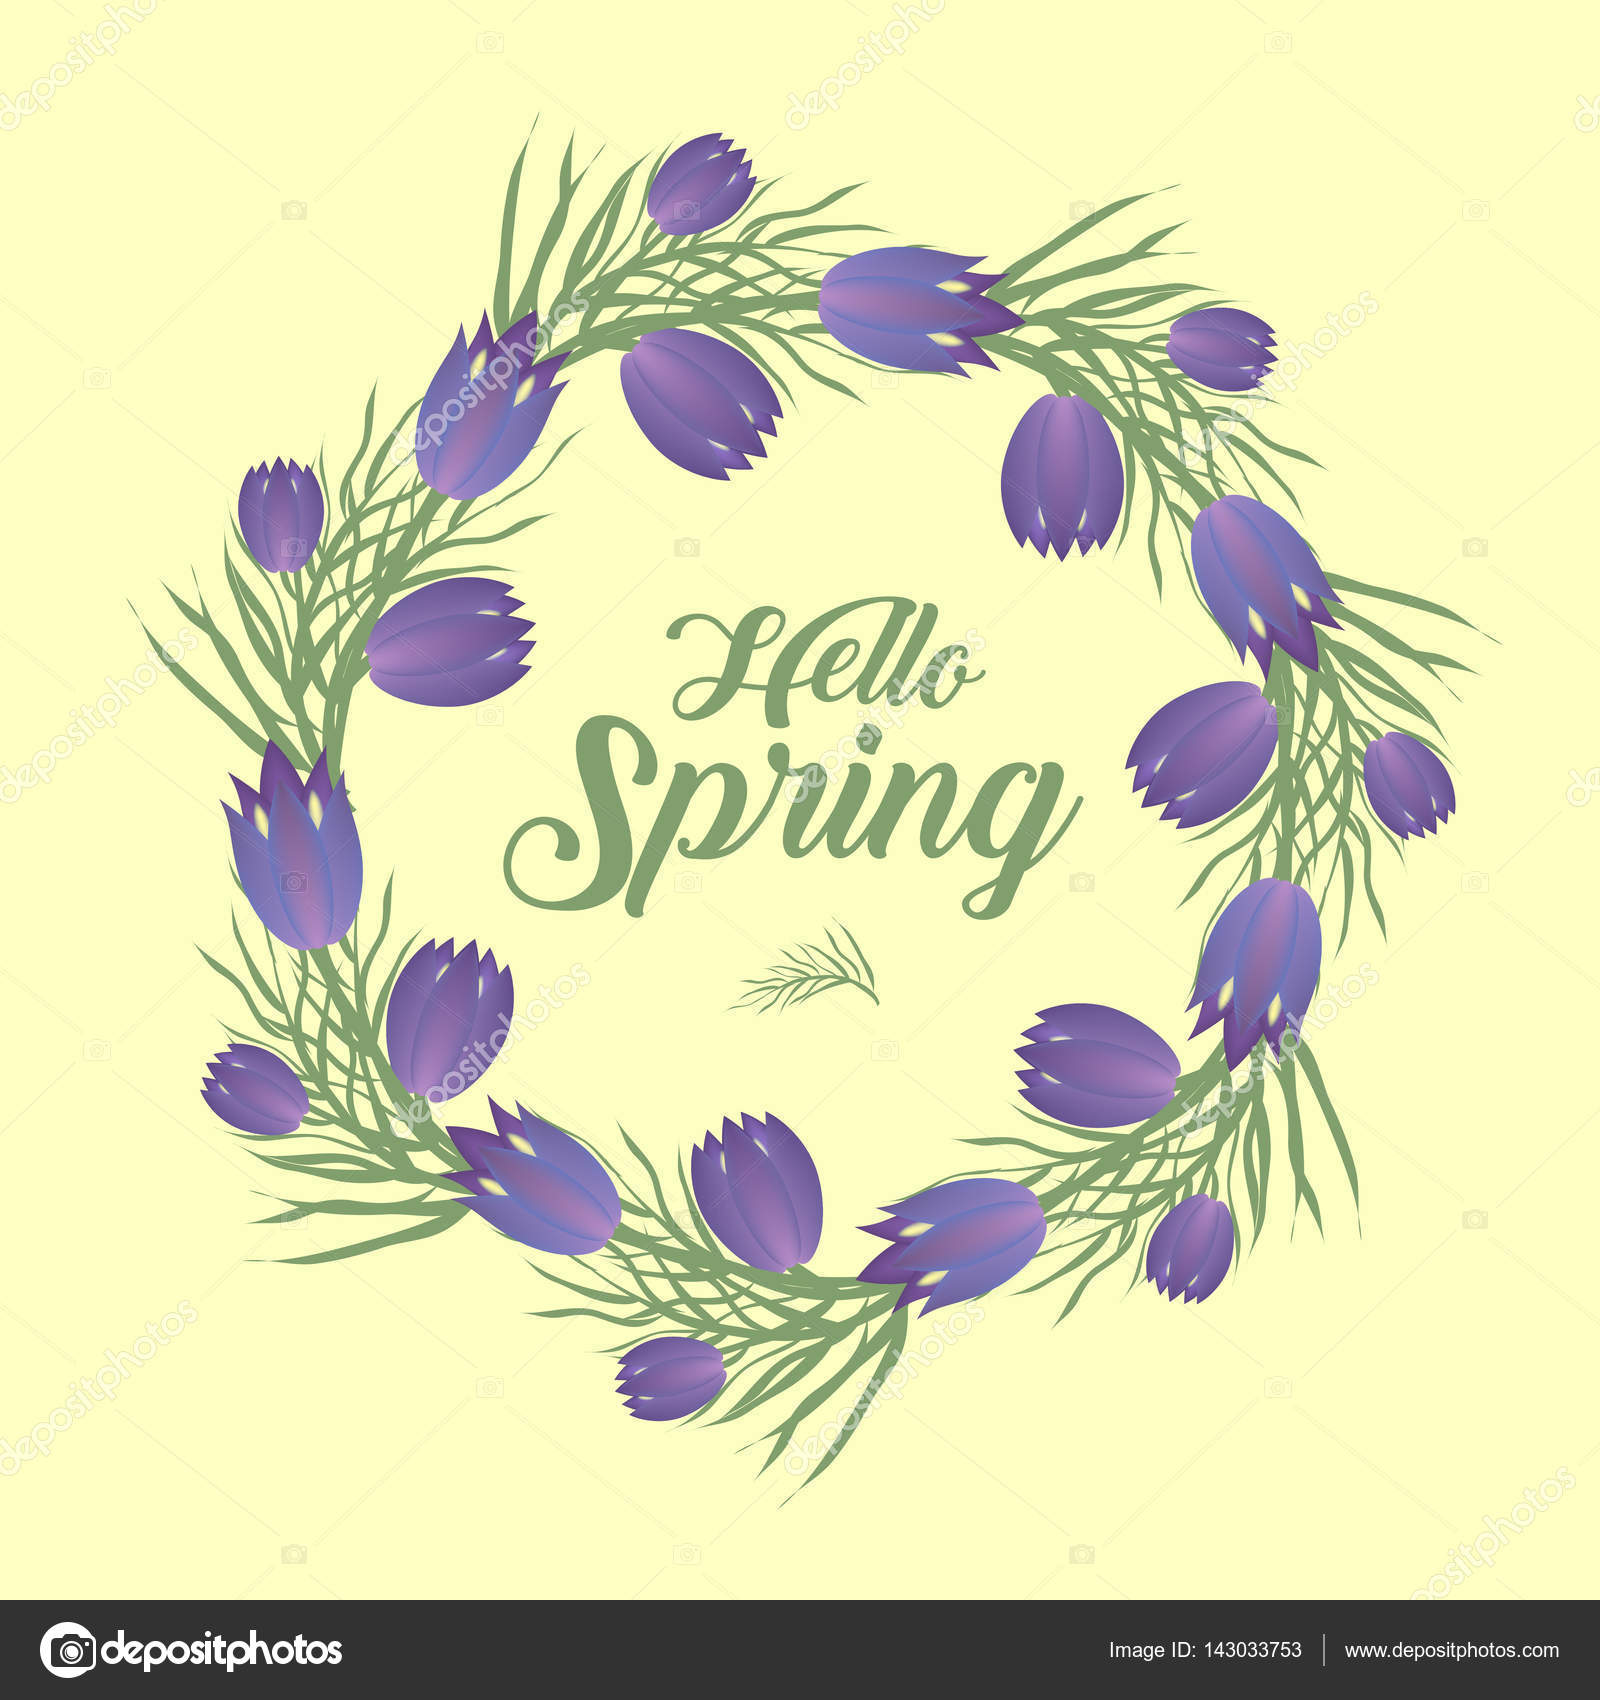 hello spring floral frame for text isolated on white background